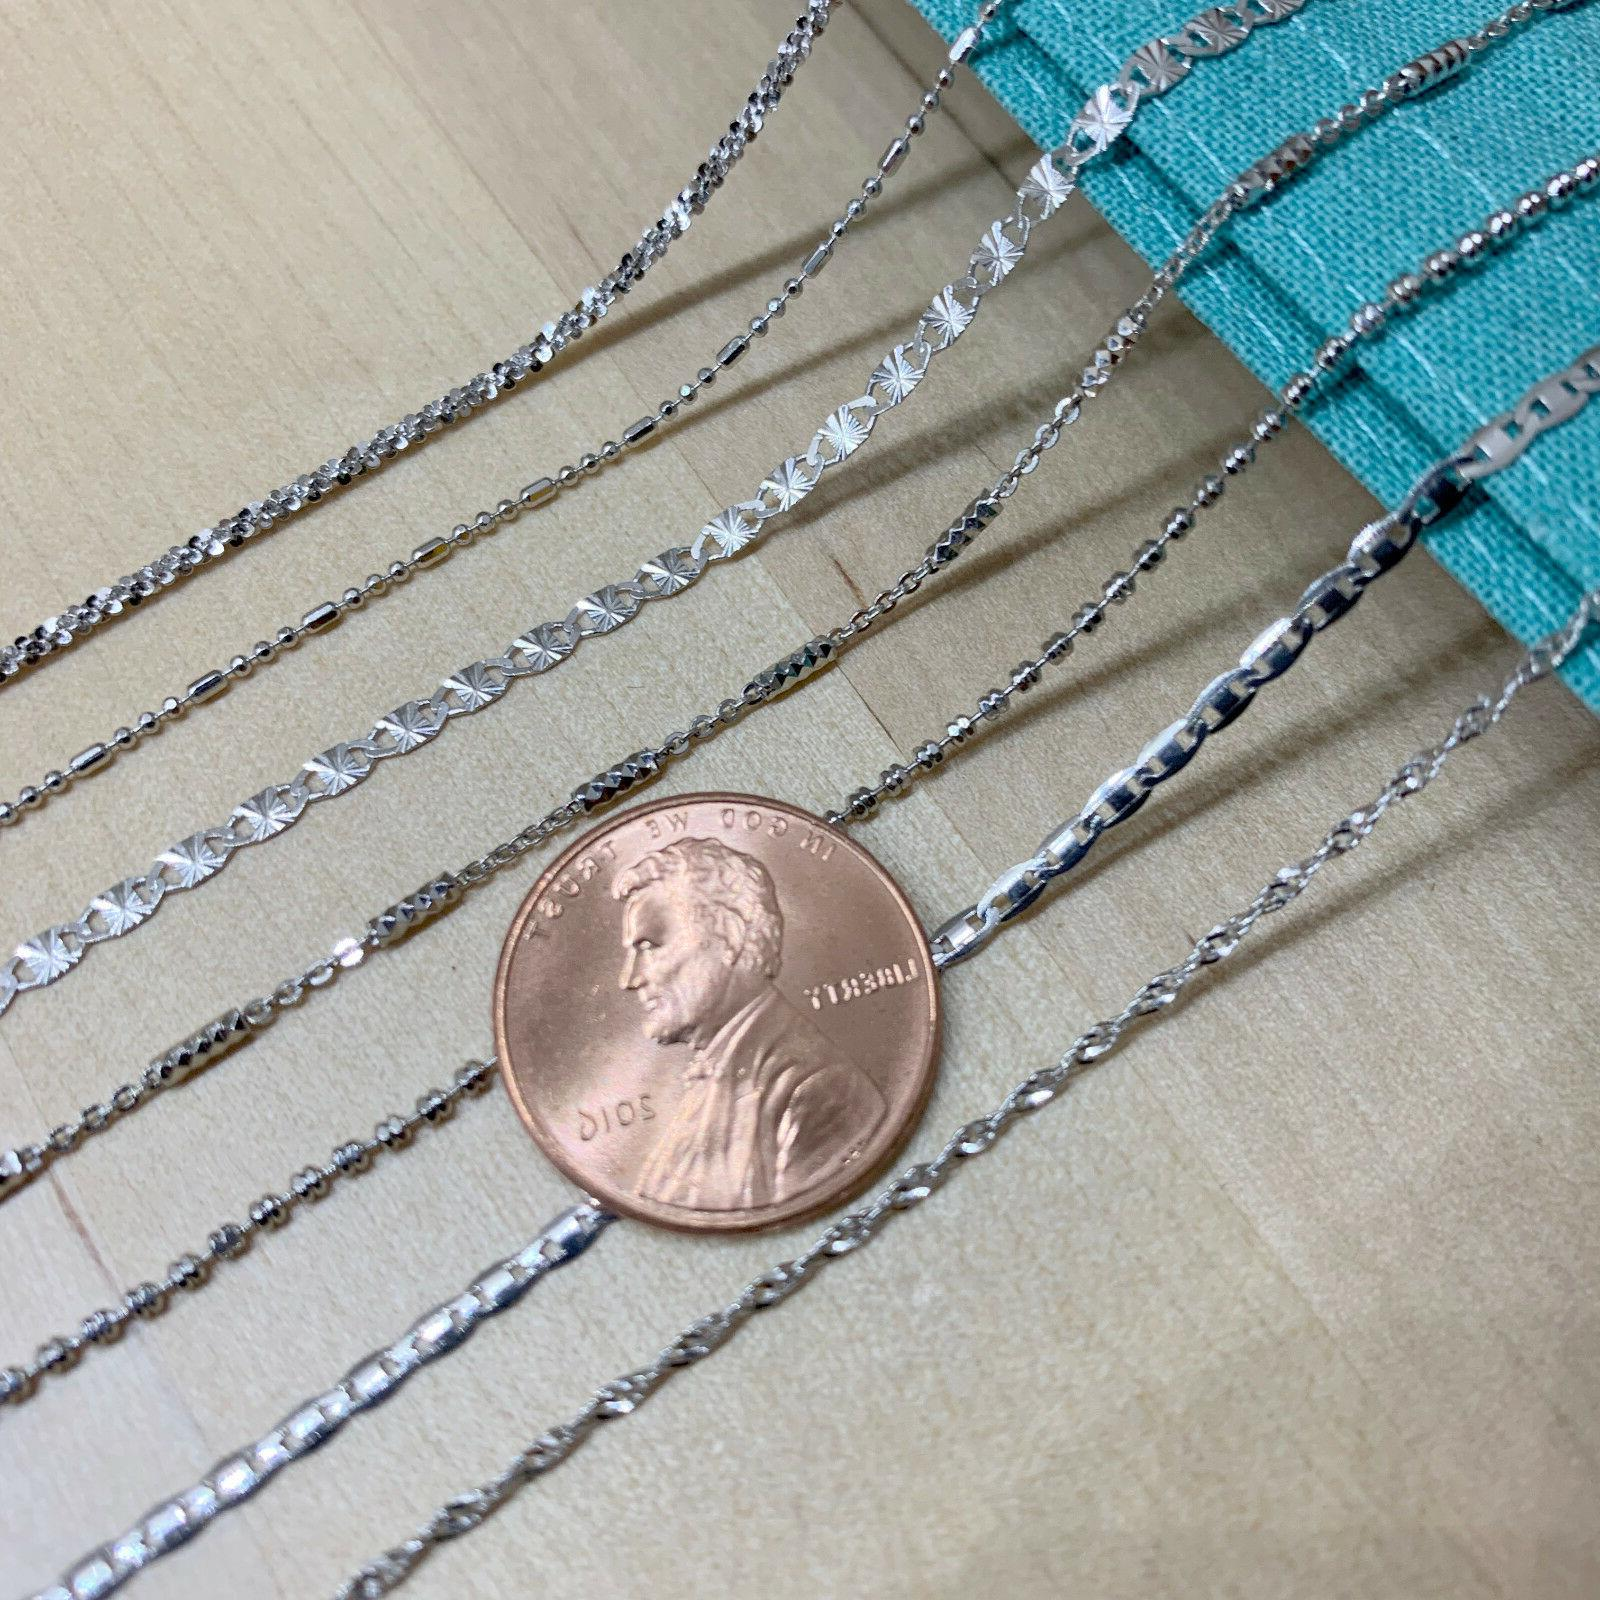 Real Unique SOLID 925 Sterling Chain Made Italy